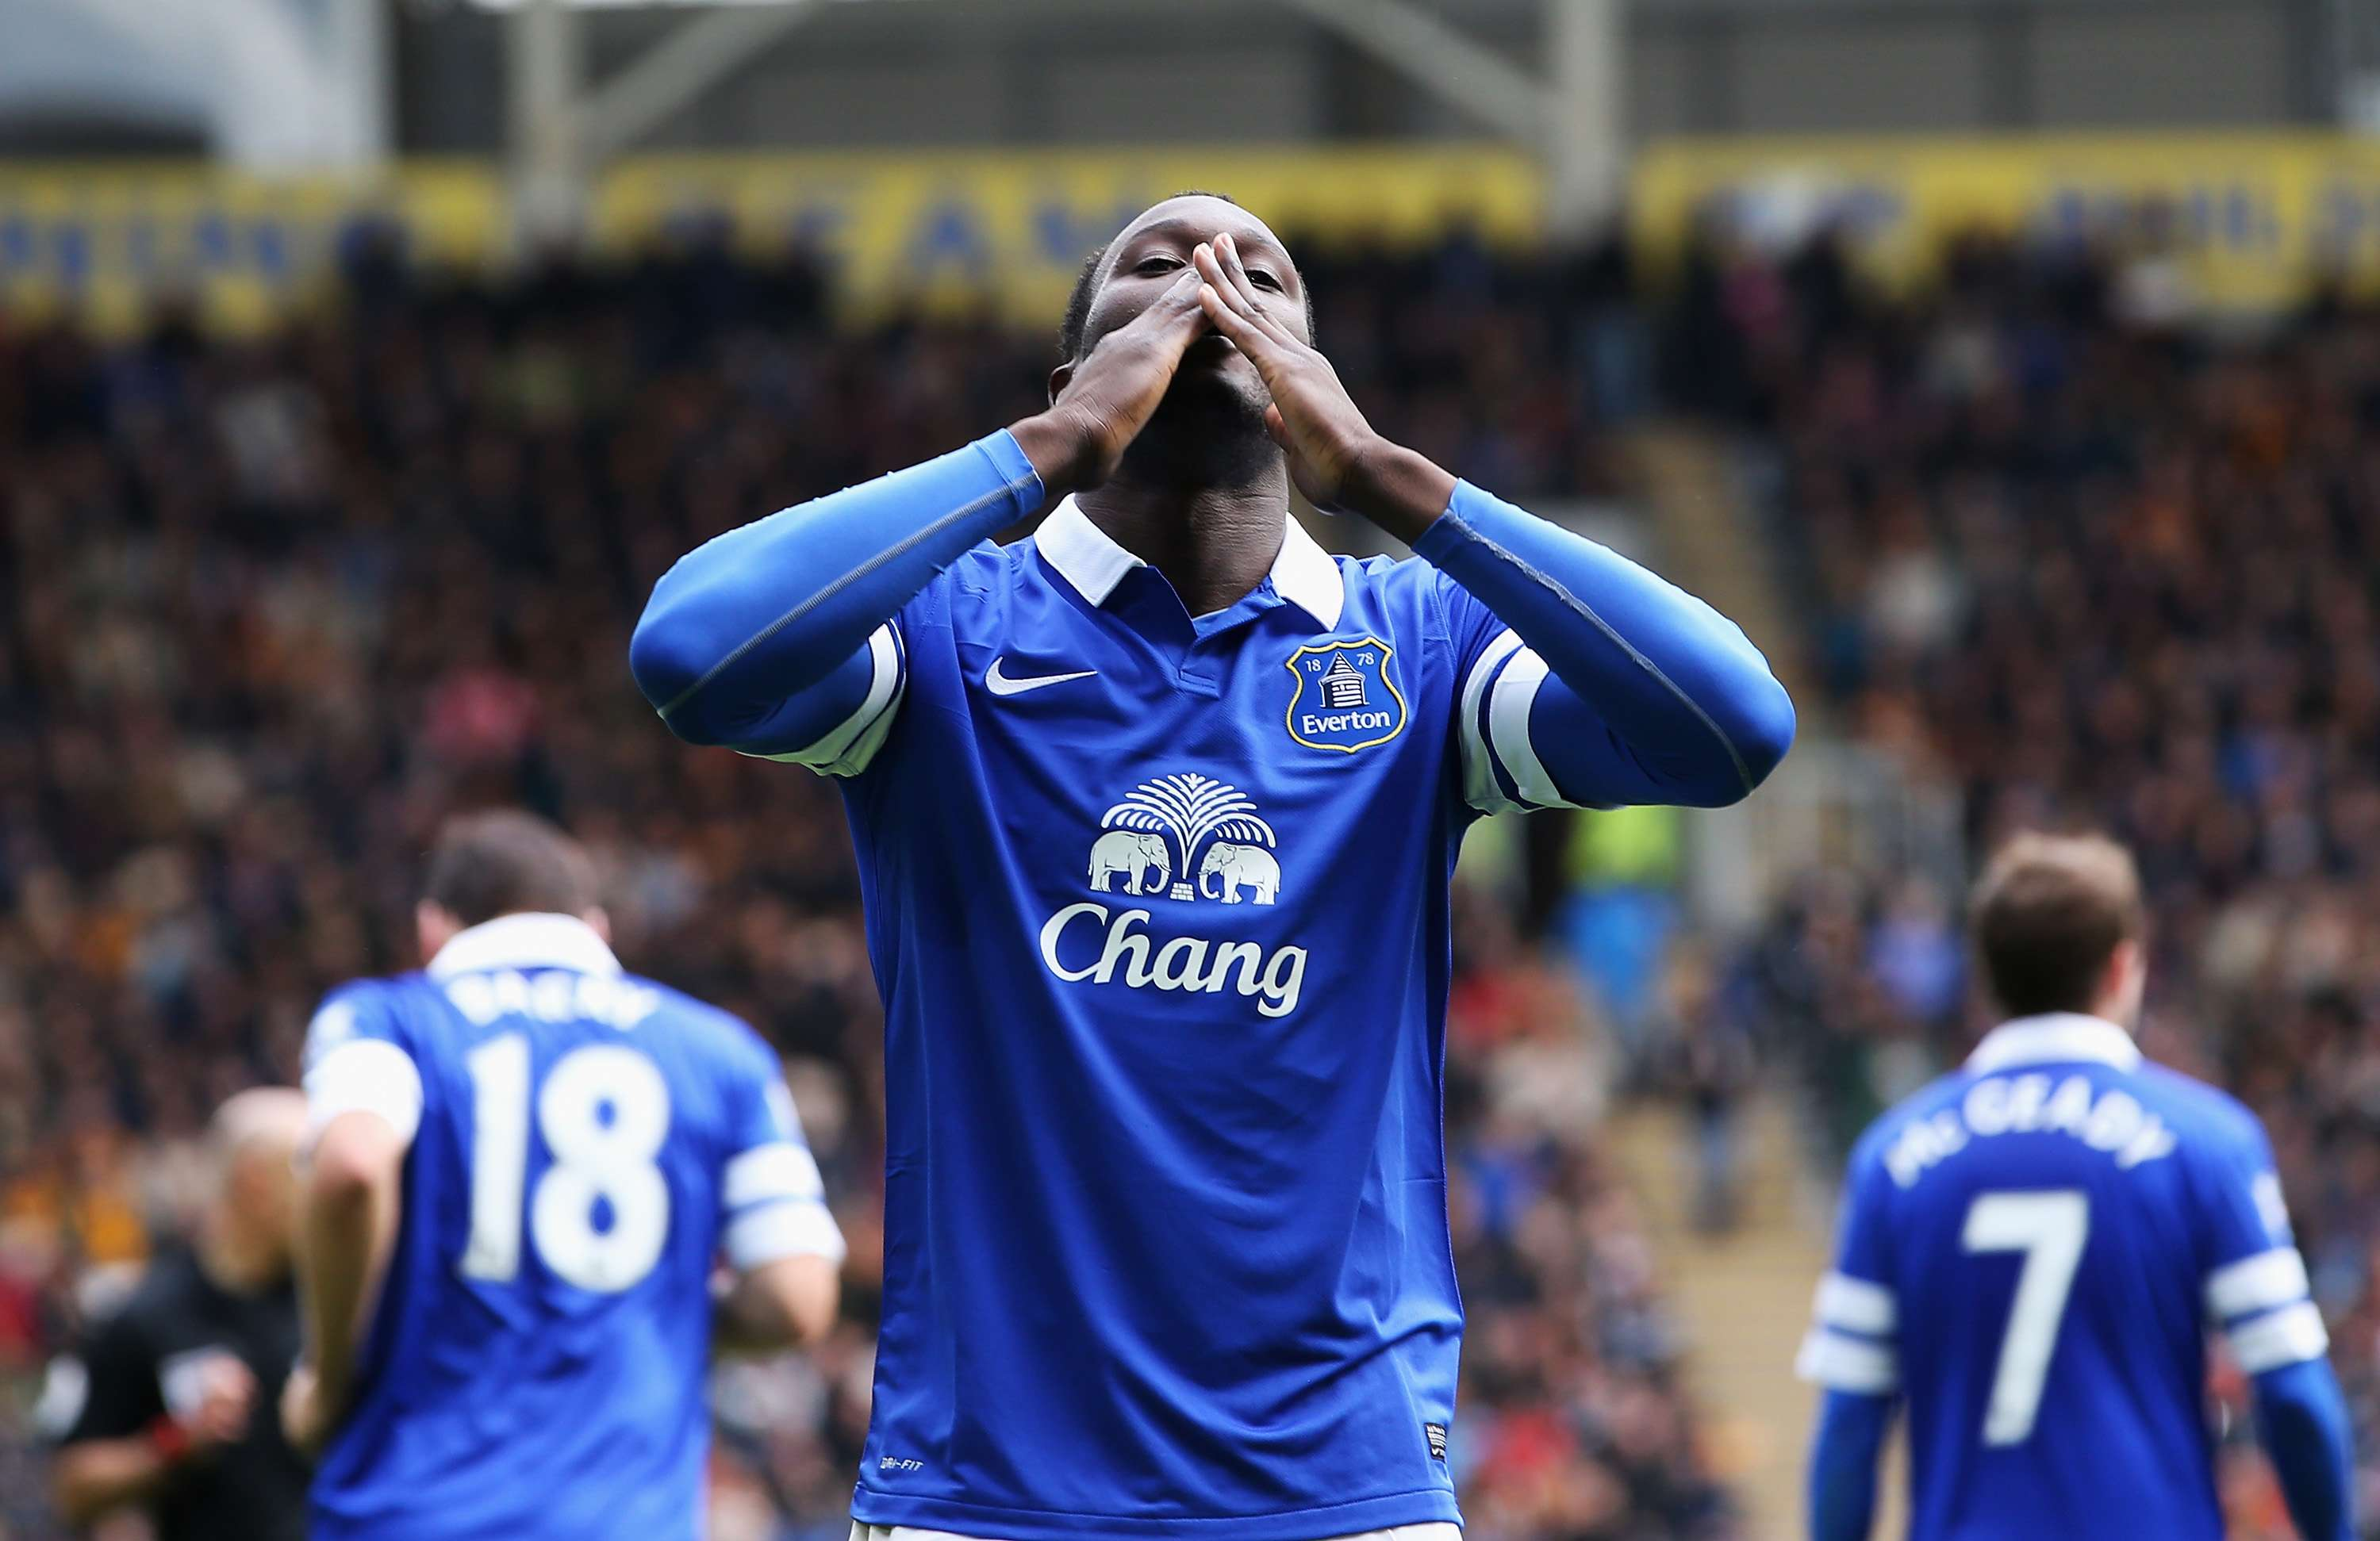 Everton signs Lukaku for club-record $74 million